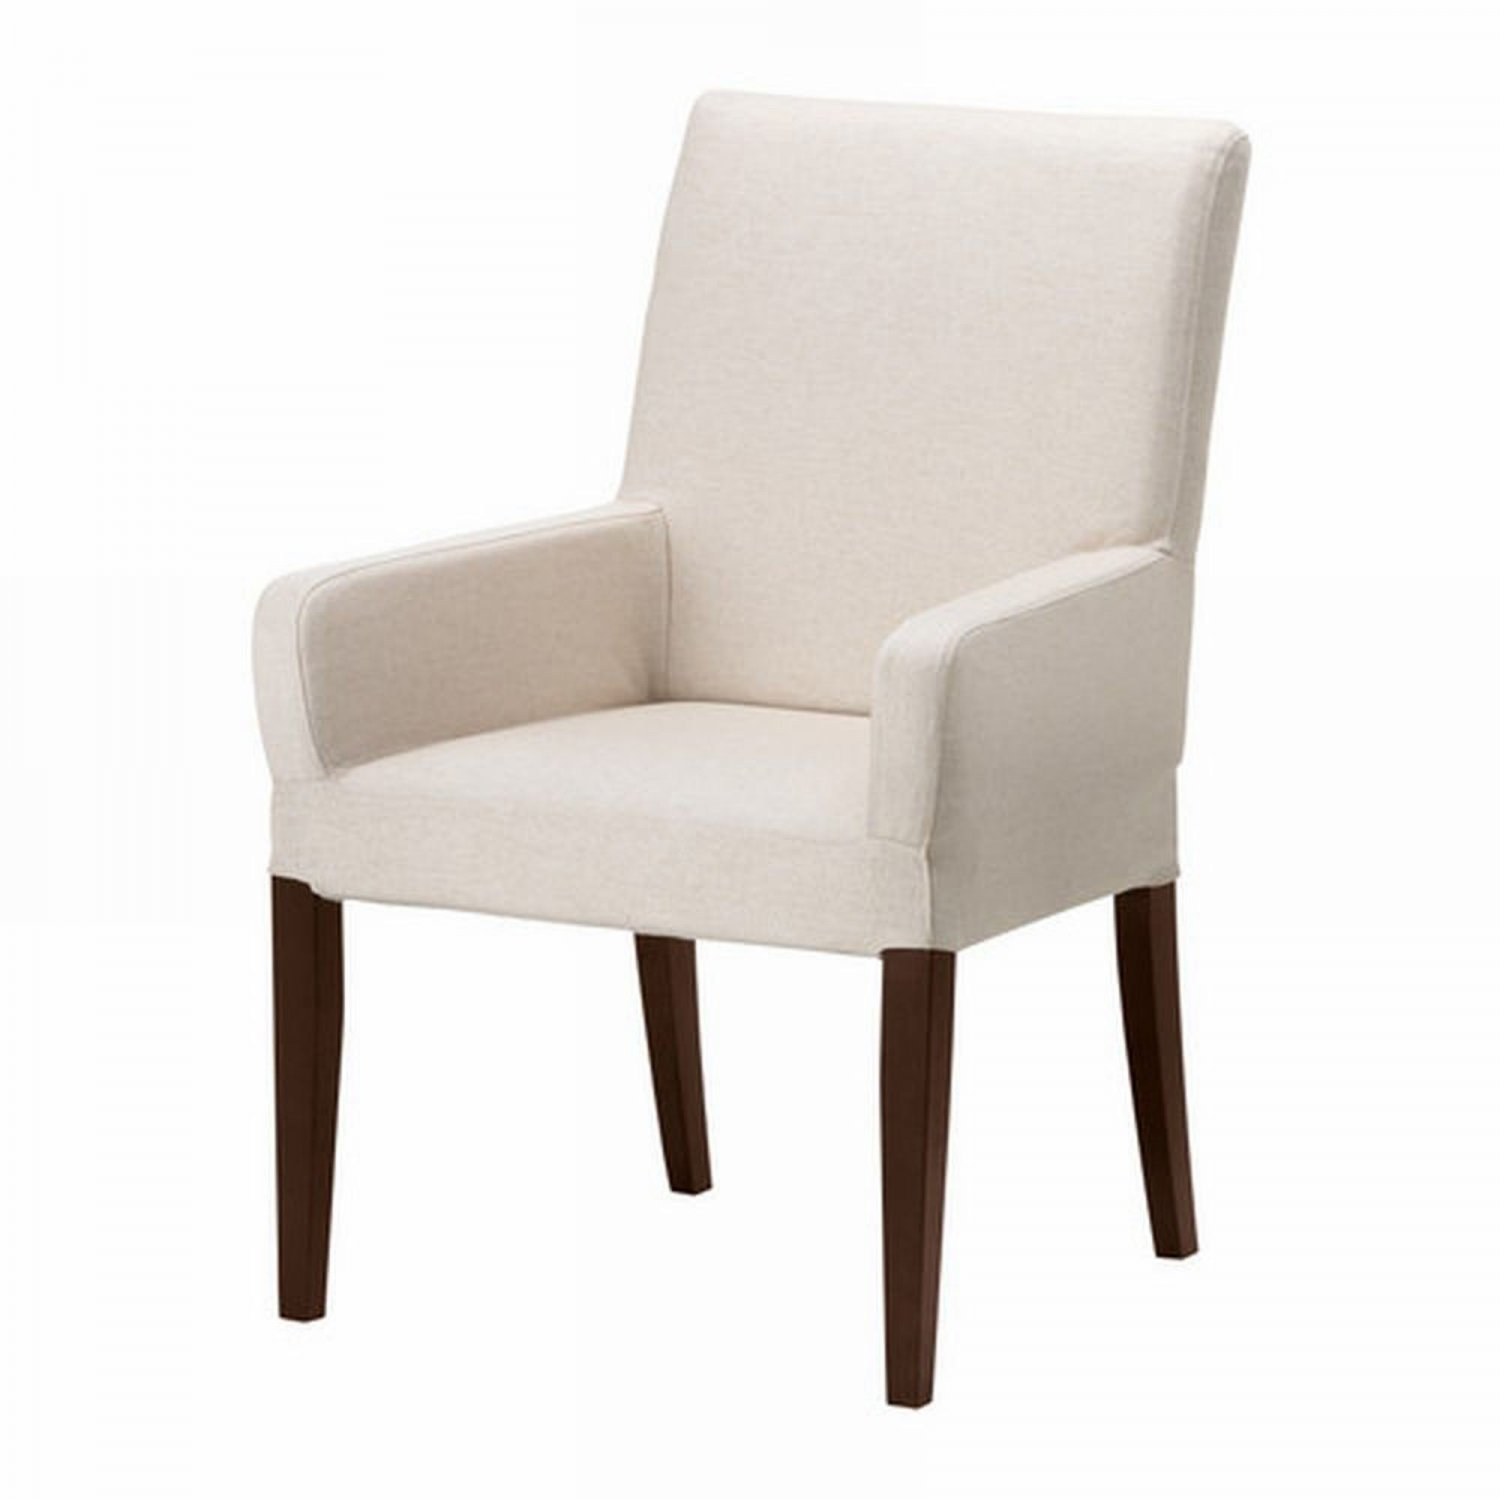 "Ikea Henriksdal Chair W Arms Slipcover Cover 21 54cm: IKEA HENRIKSDAL Chair W Arms SLIPCOVER Cover 21"" 54cm"